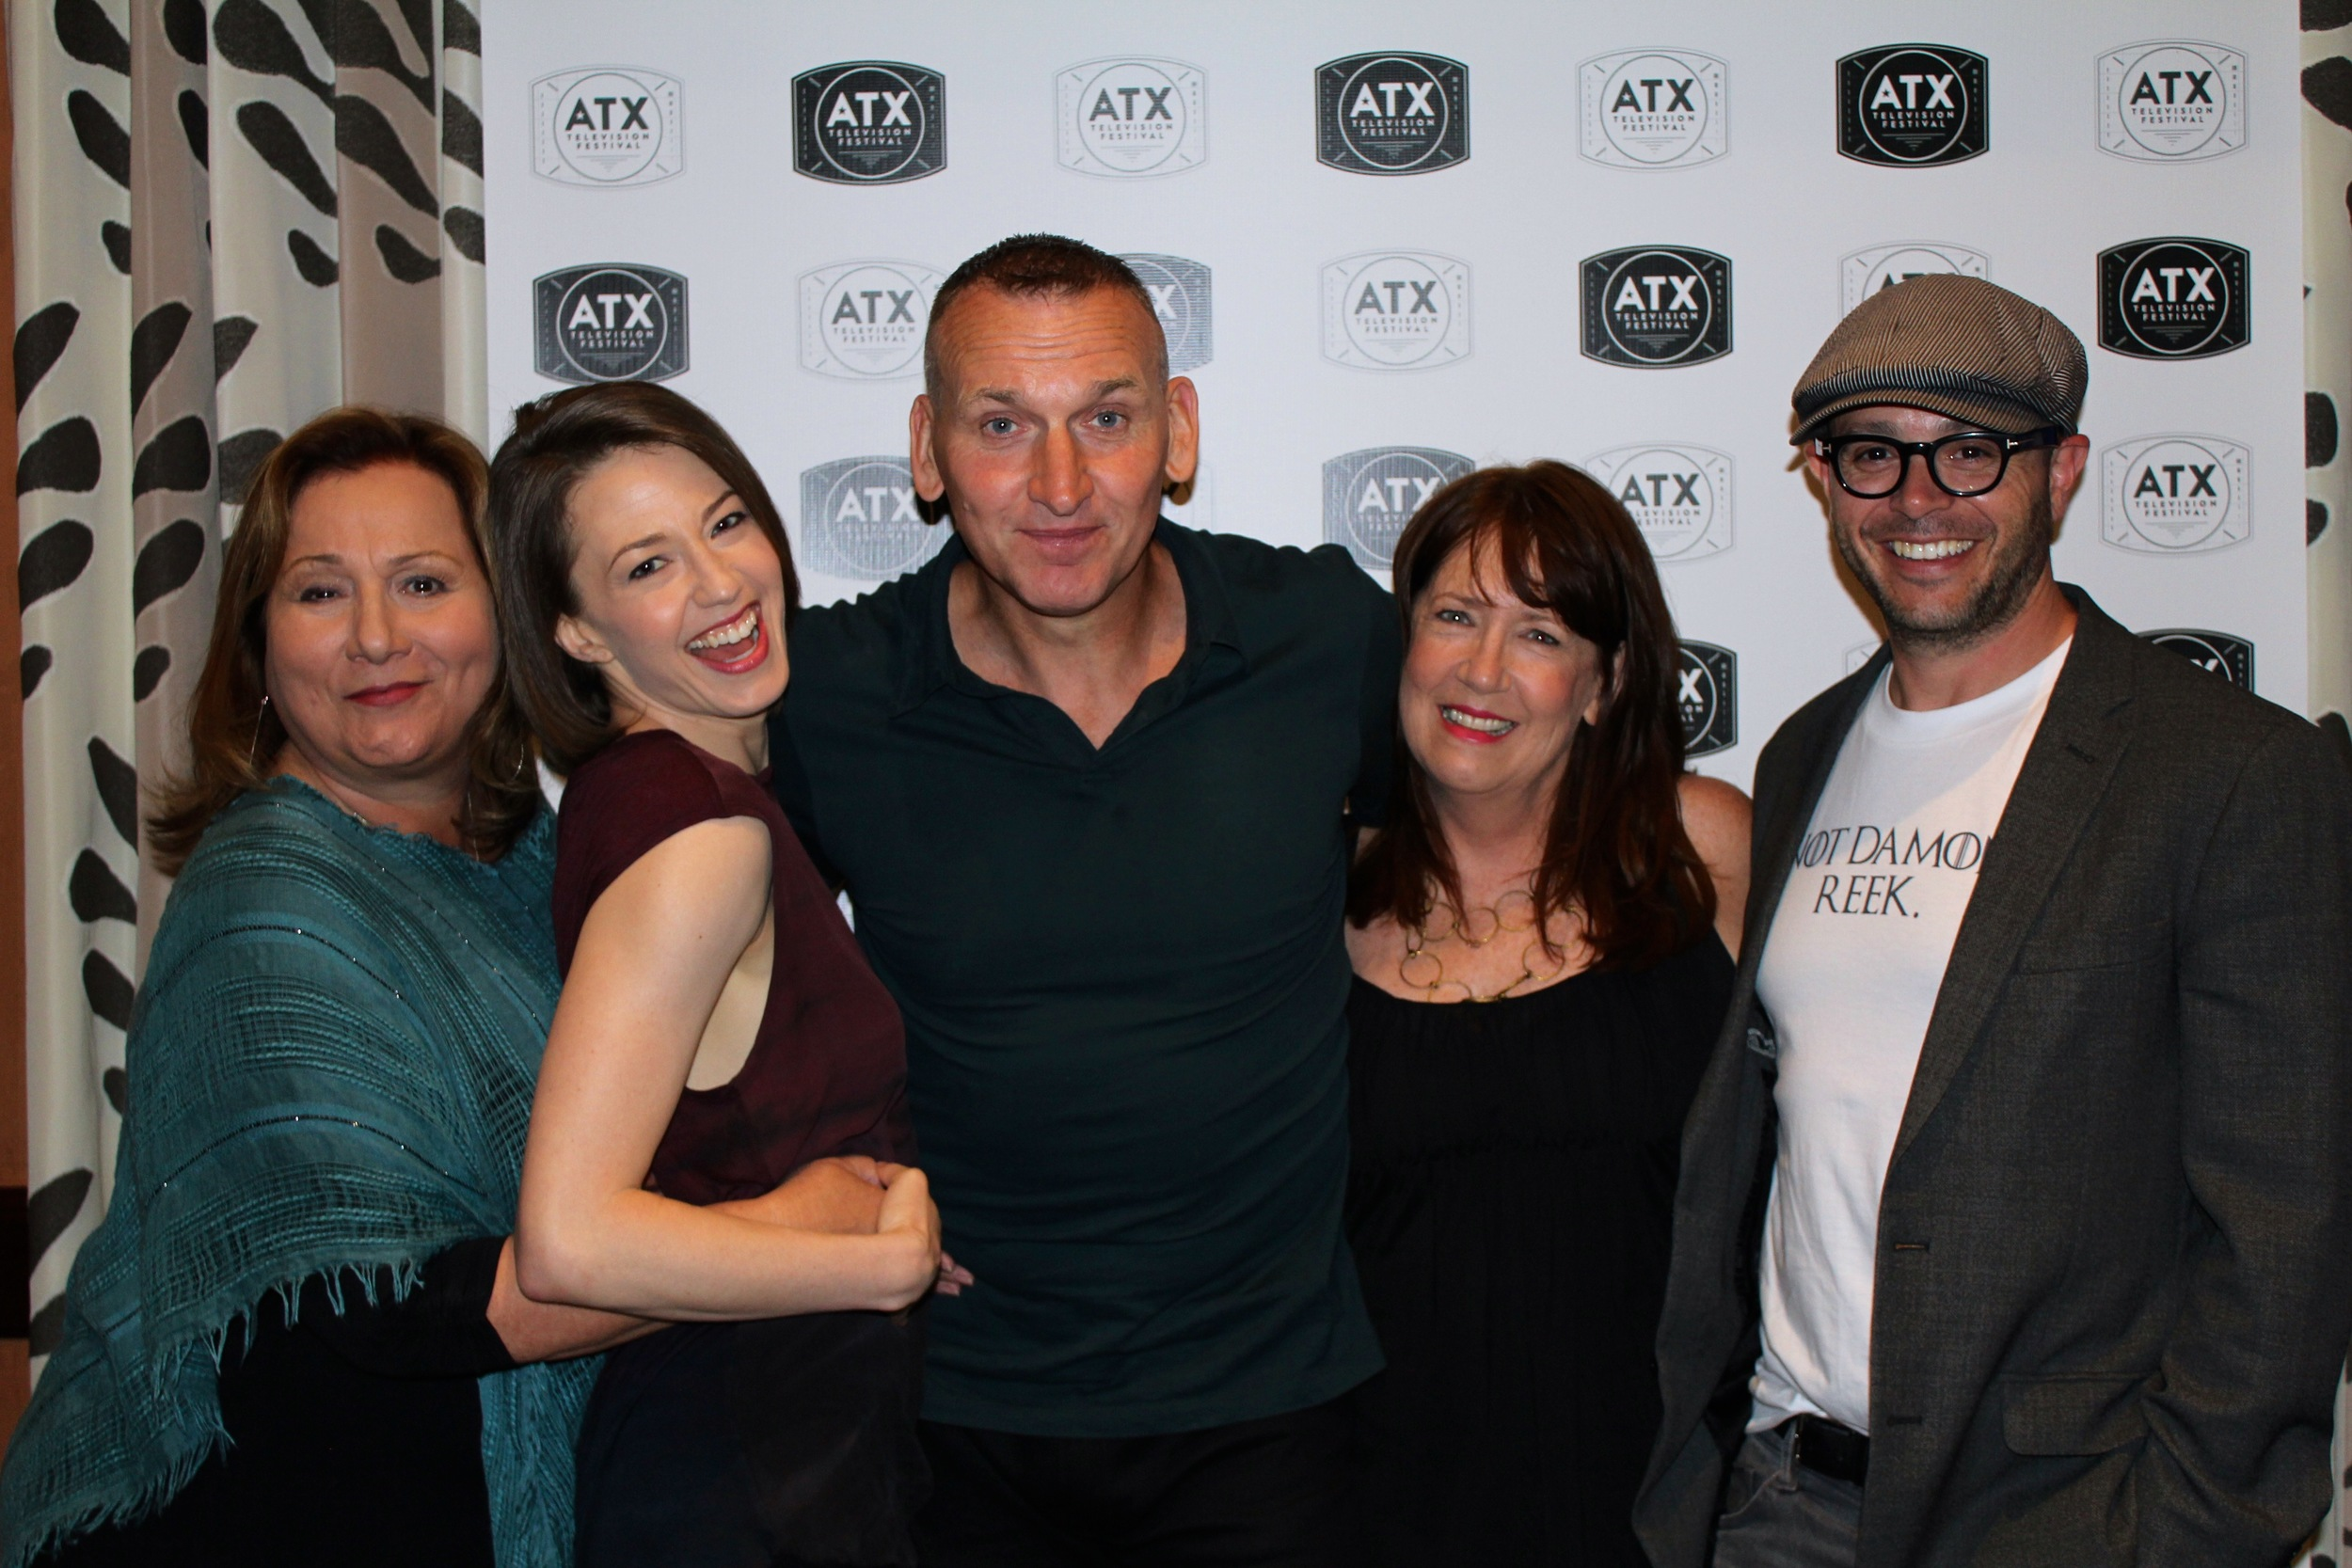 (L-R): director and executive producer Mimi Leder, Carrie Coon, Christopher Eccleston, Ann Dowd and series creator Damon Lindelof